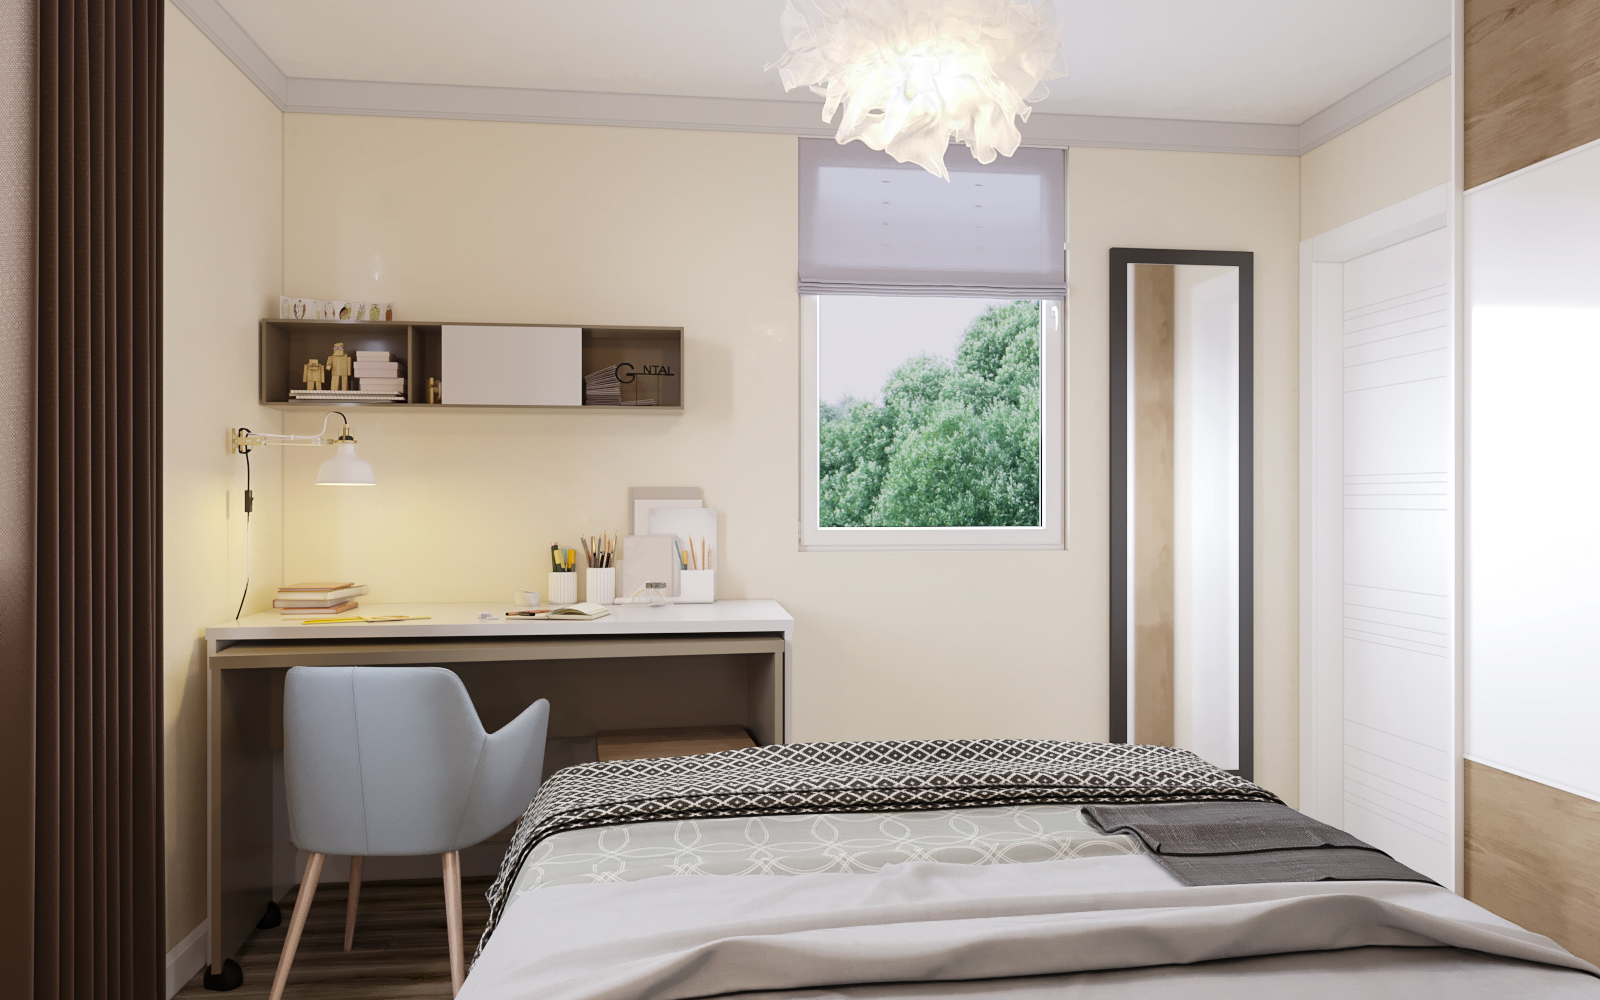 Bedroom number 2 in 3d max corona render image